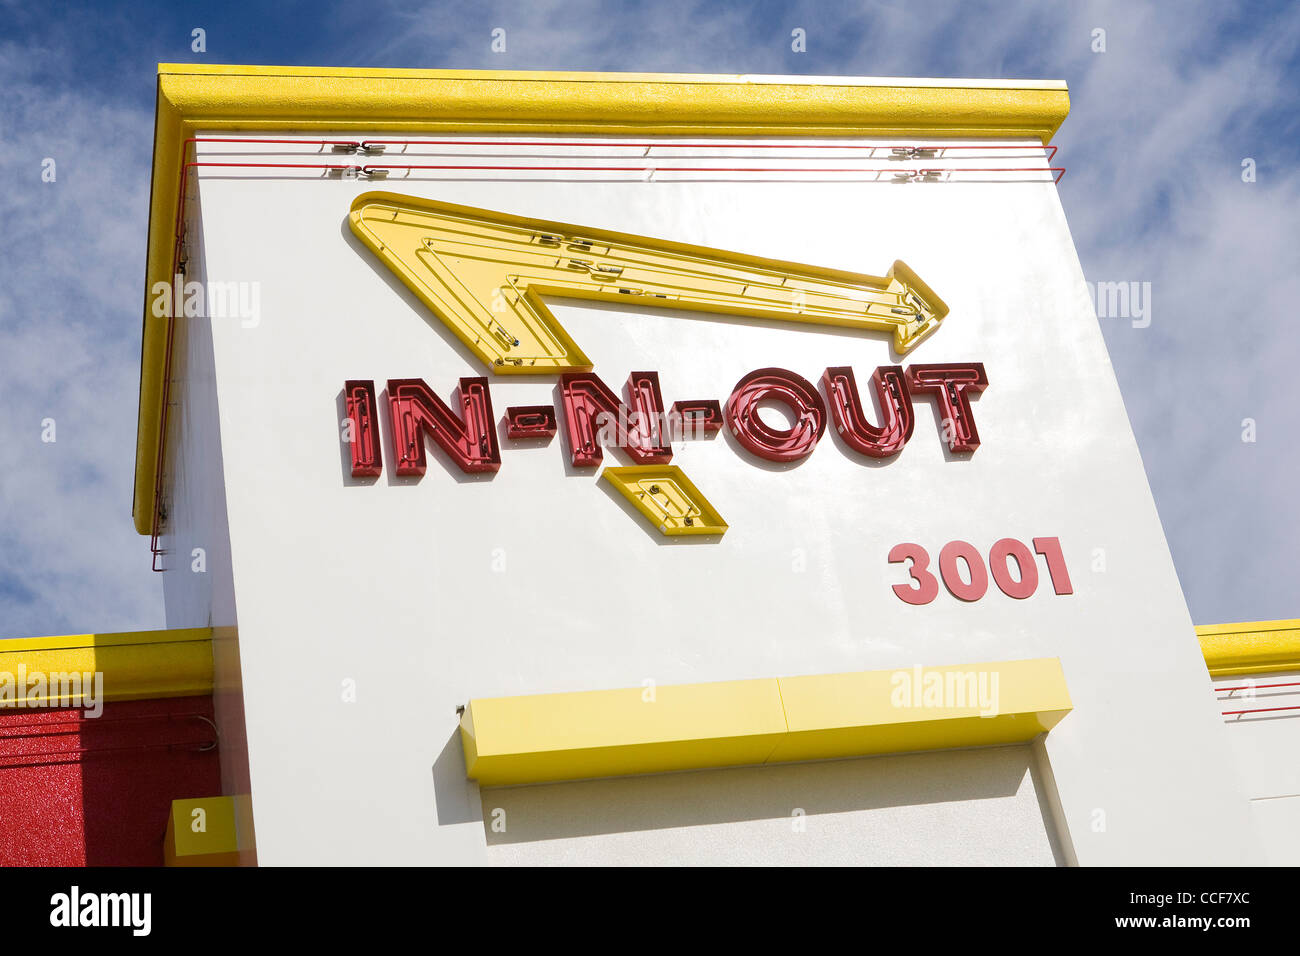 In N Out Burger Logo Stock Photos & In N Out Burger Logo Stock ...